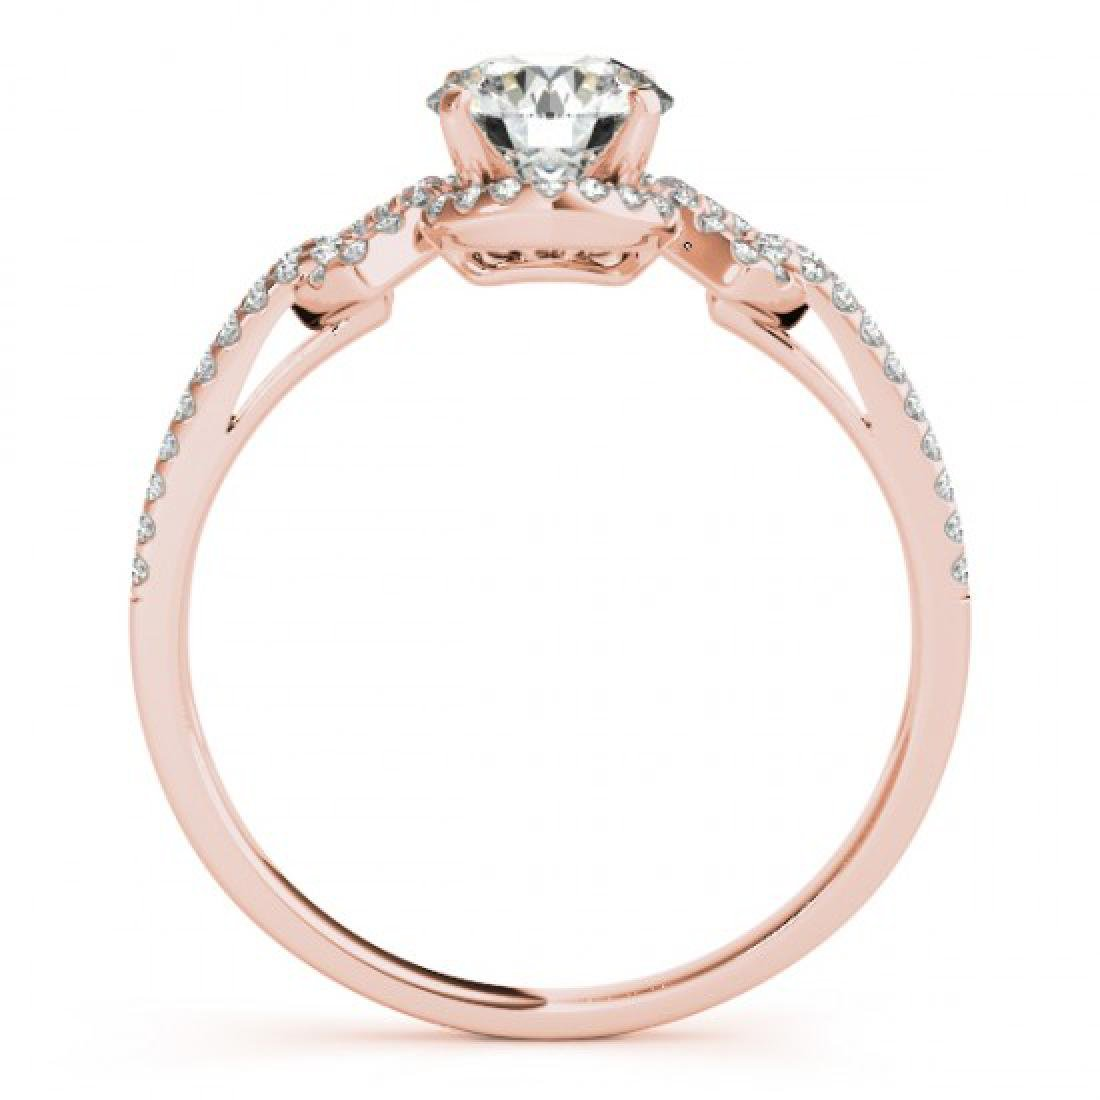 0.9 CTW Certified VS/SI Diamond Solitaire Ring 14K Rose - 2